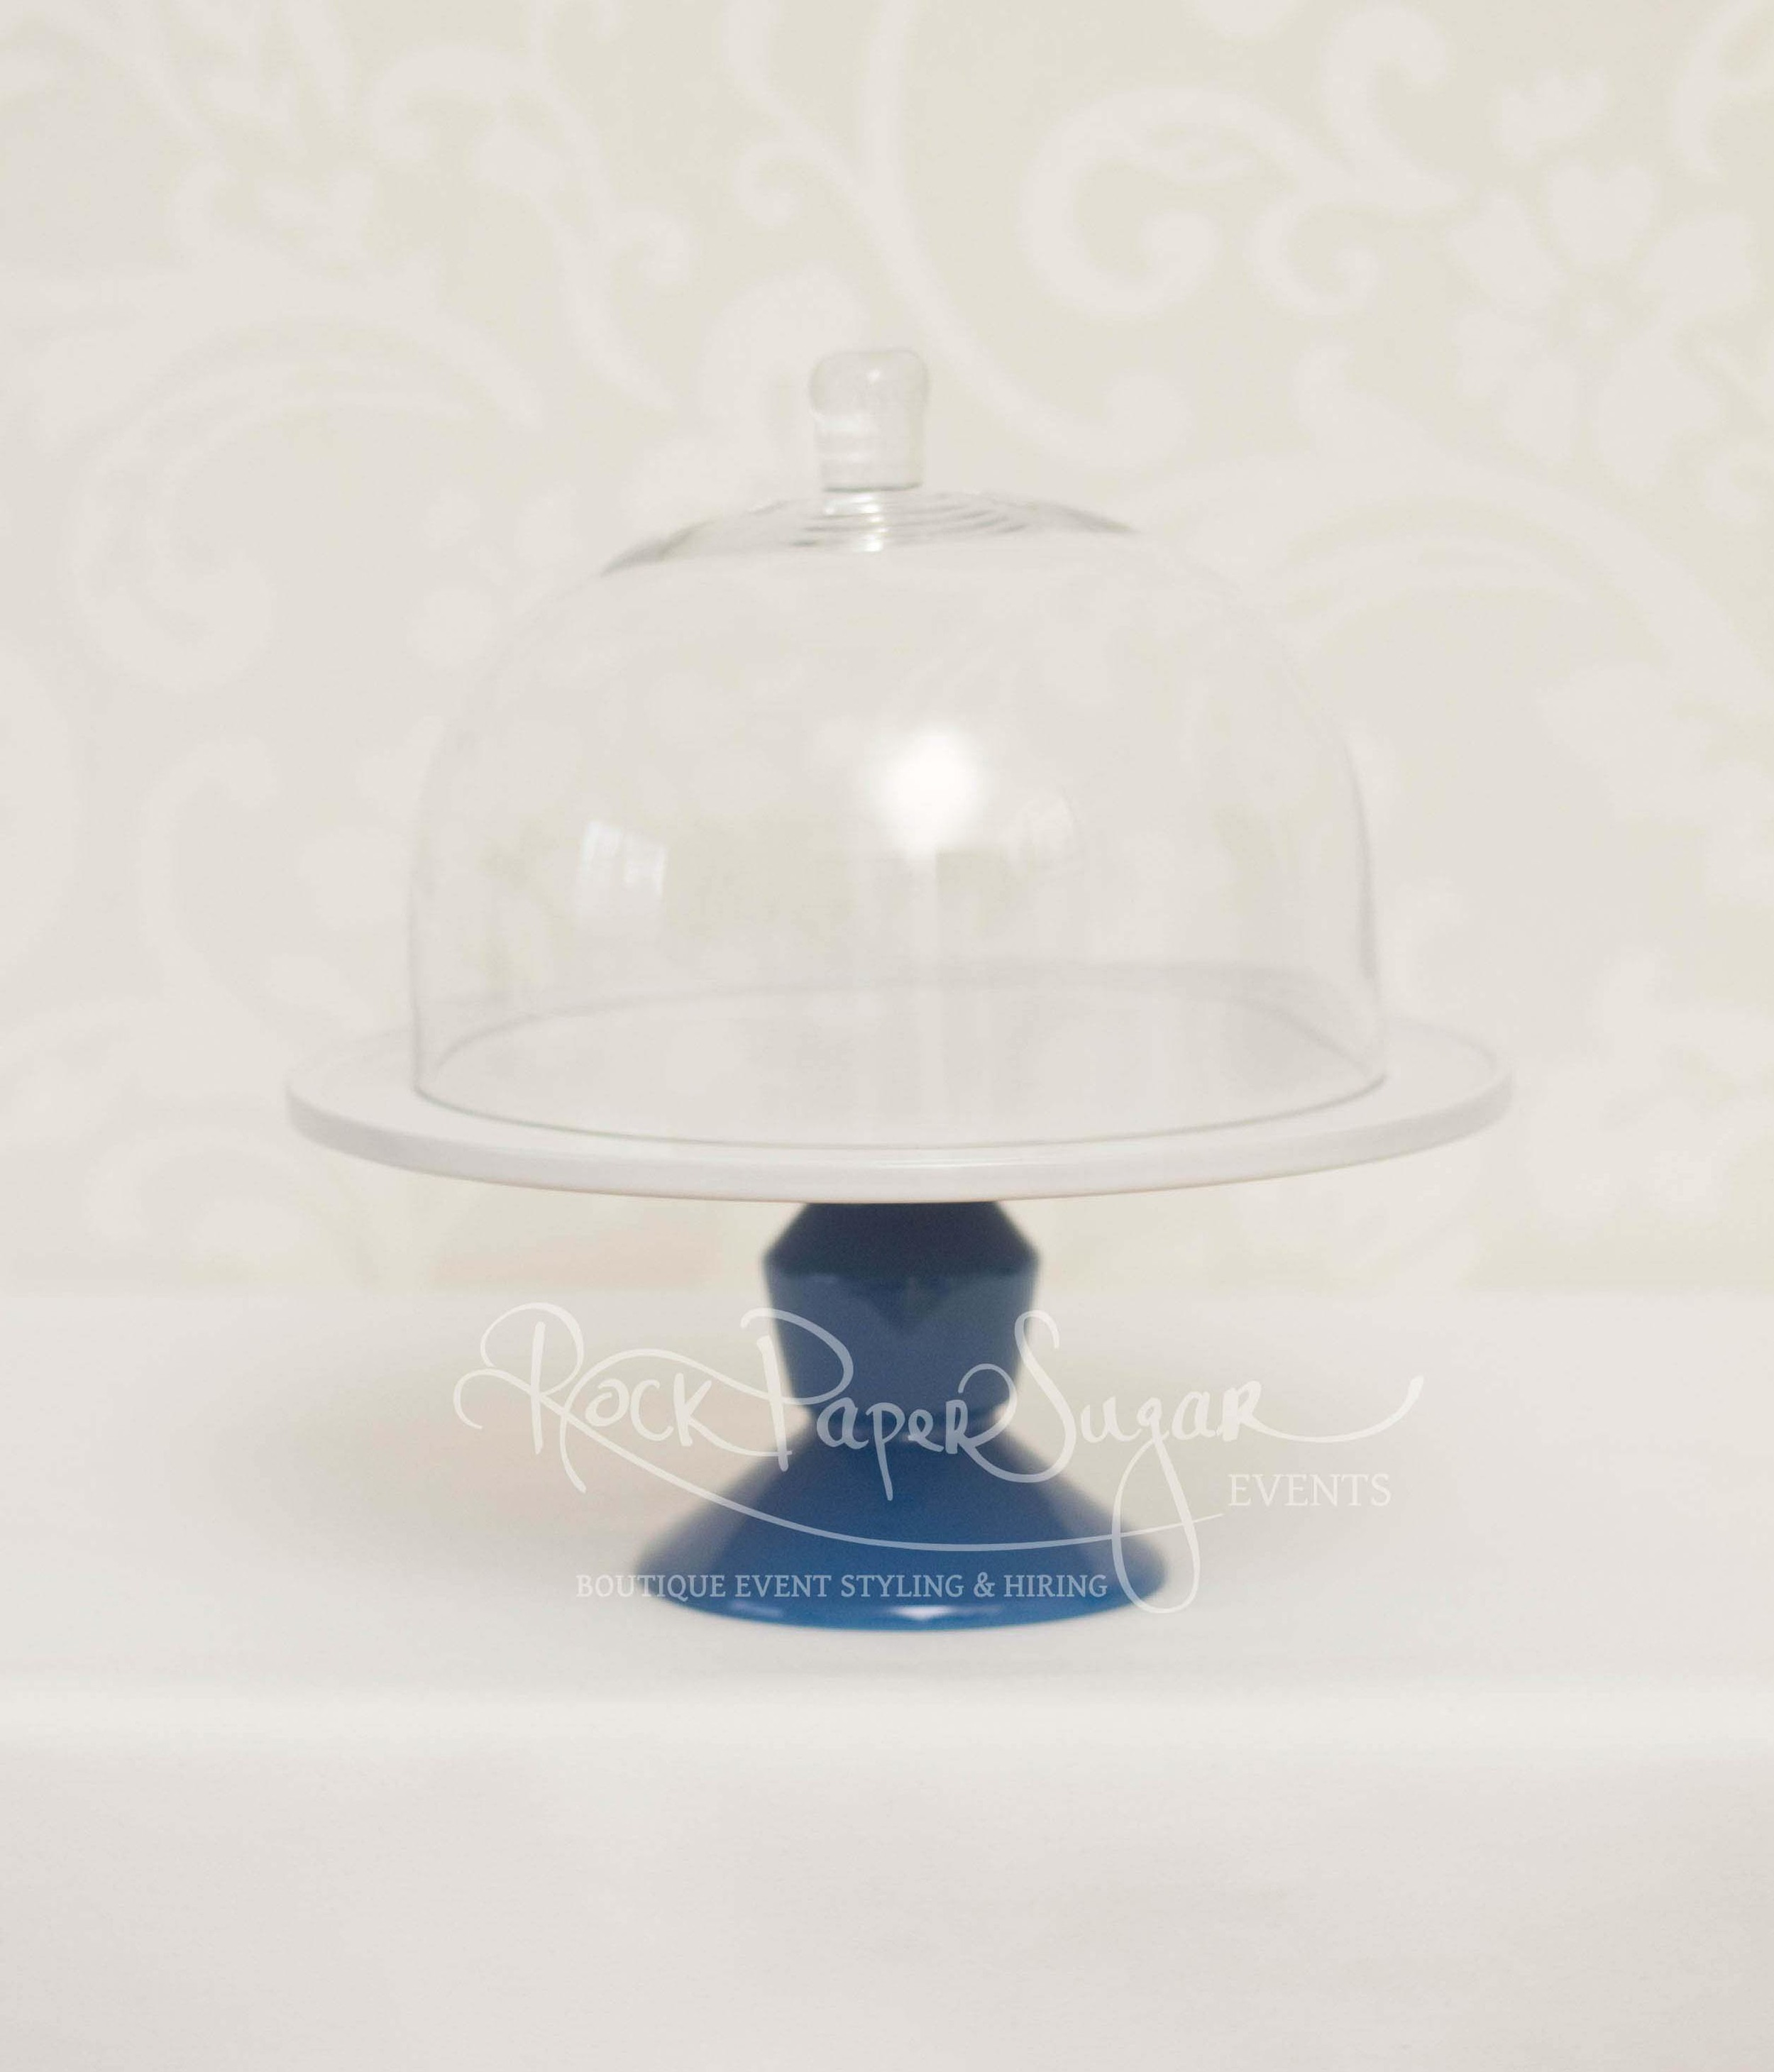 Rock Paper Sugar Events Cake Stands with Dome 006.jpg